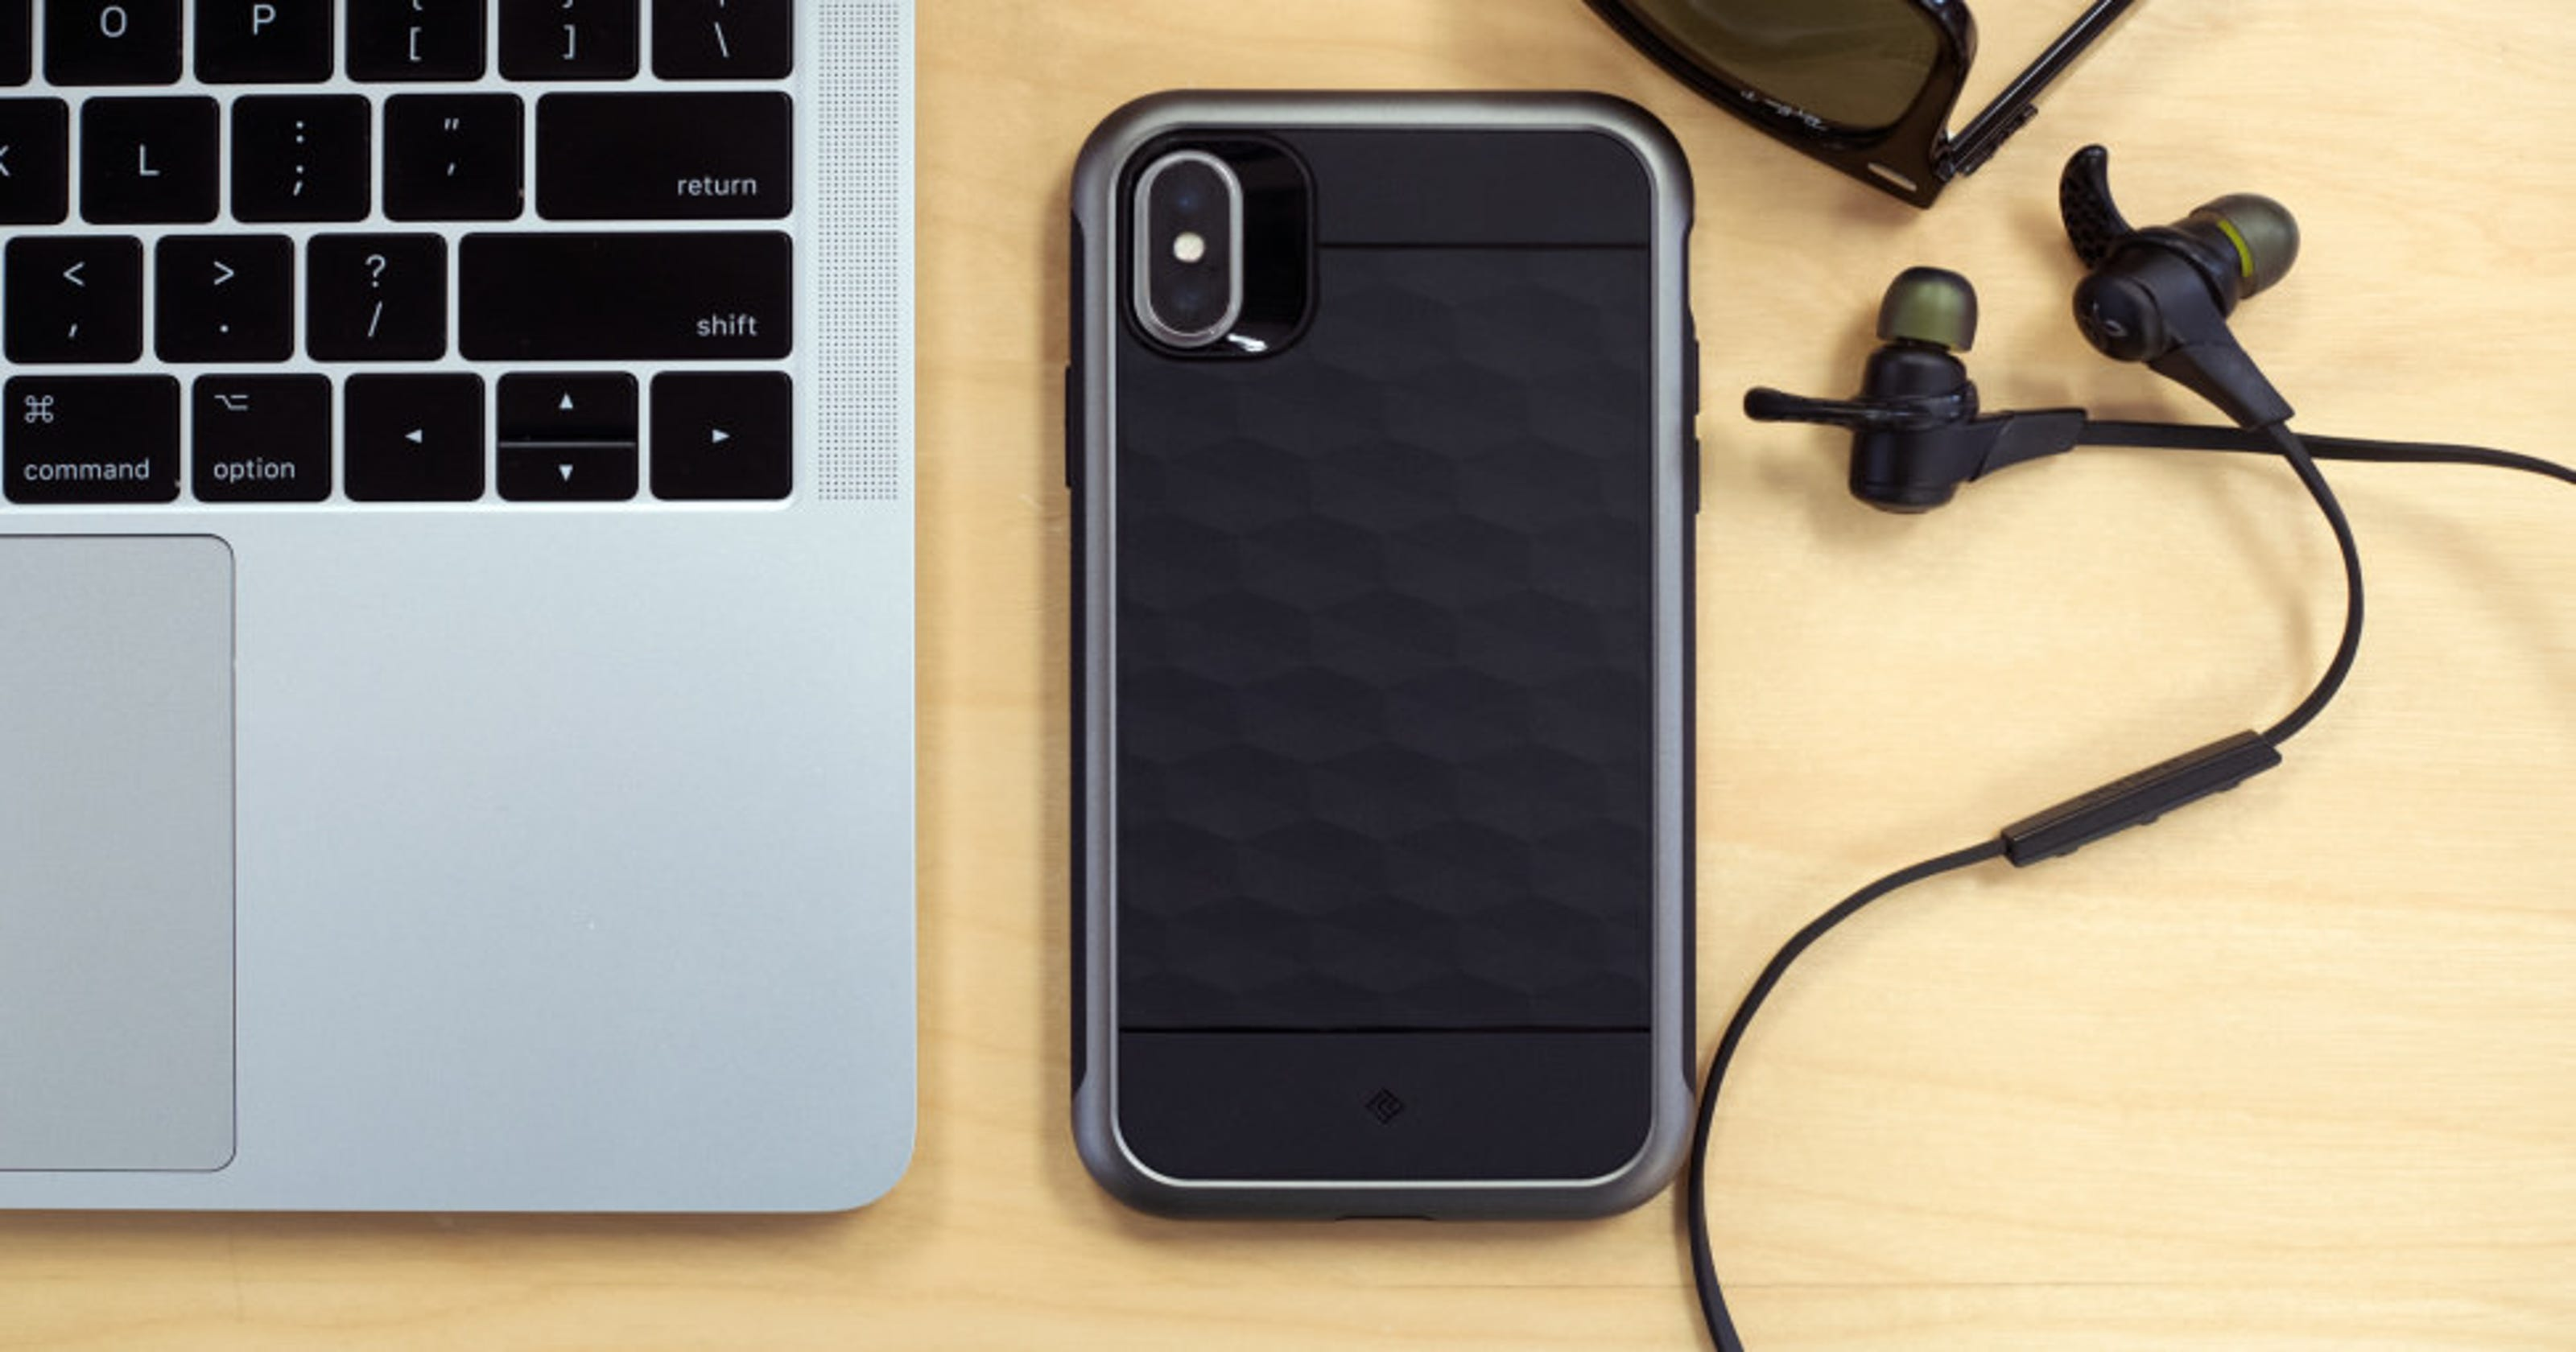 The 10 insanely popular iPhone accessories you didn't know you needed